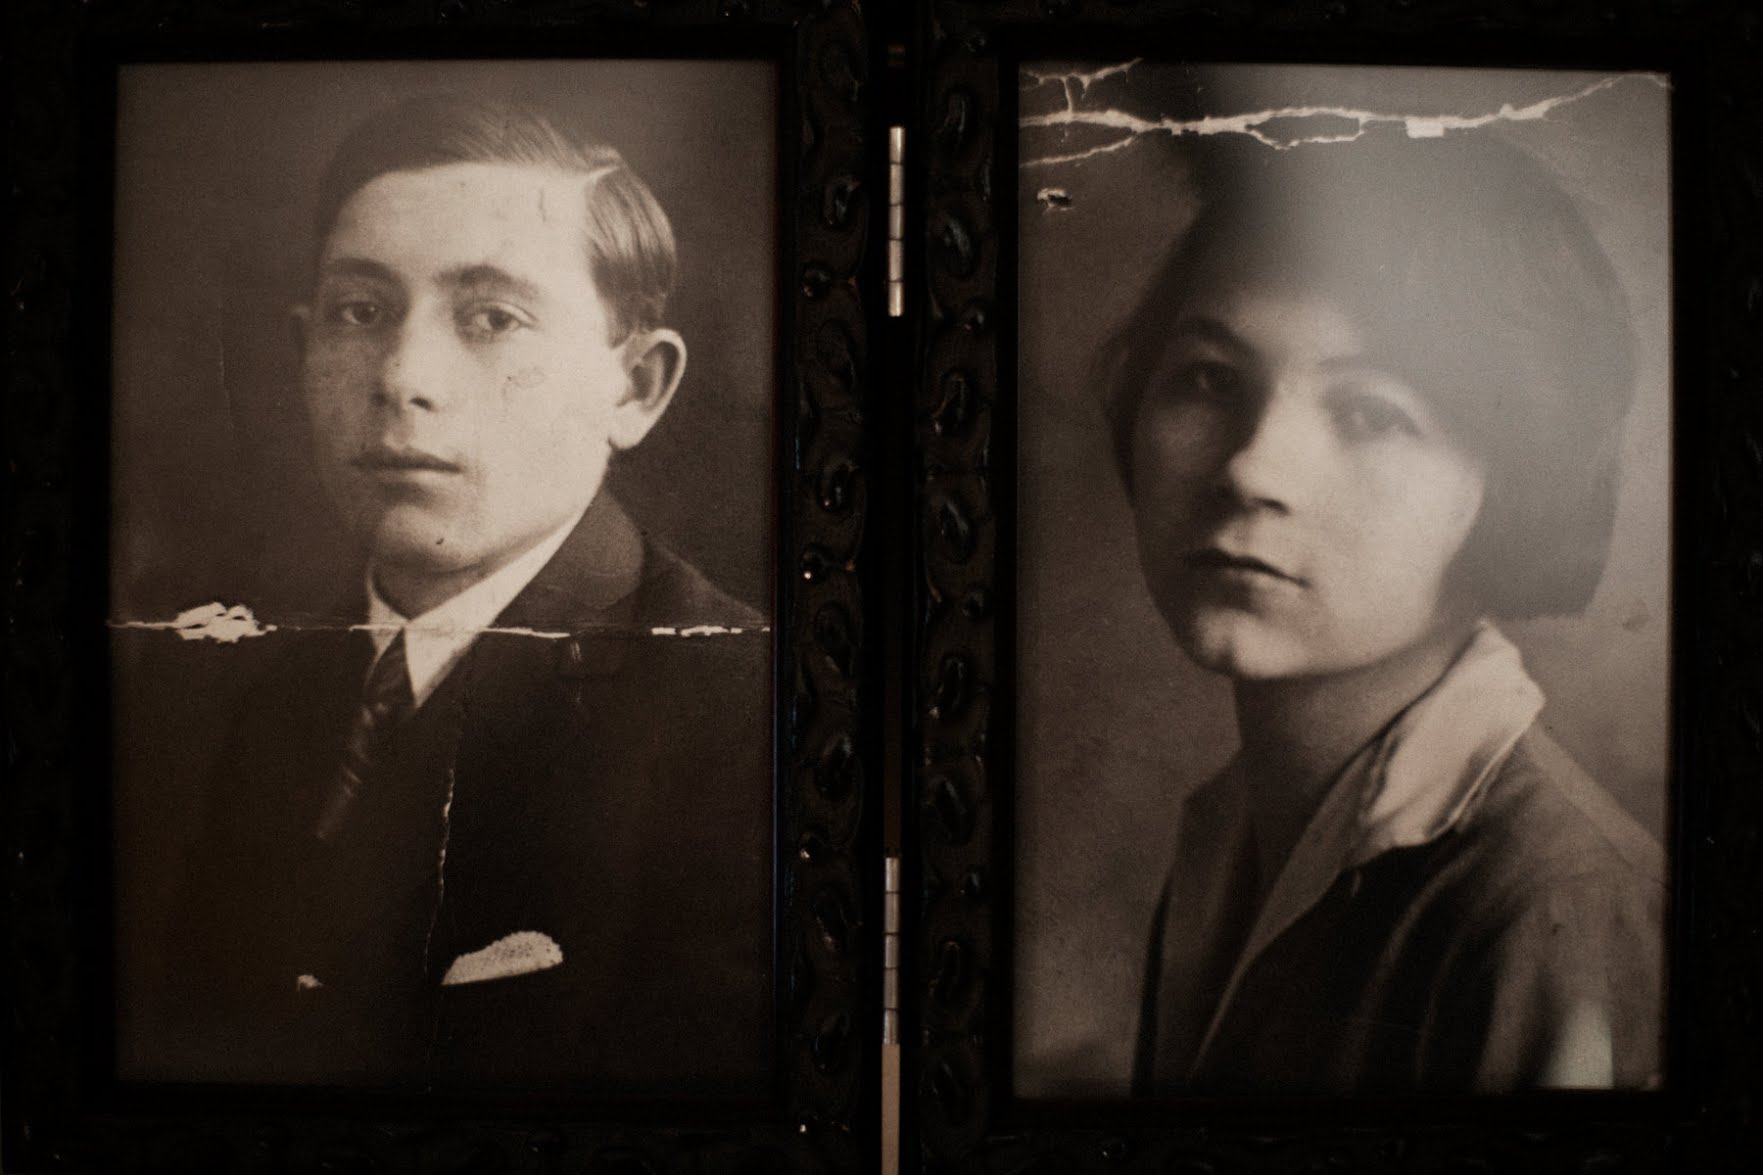 Photographs of Mr. Sarlo's parents.